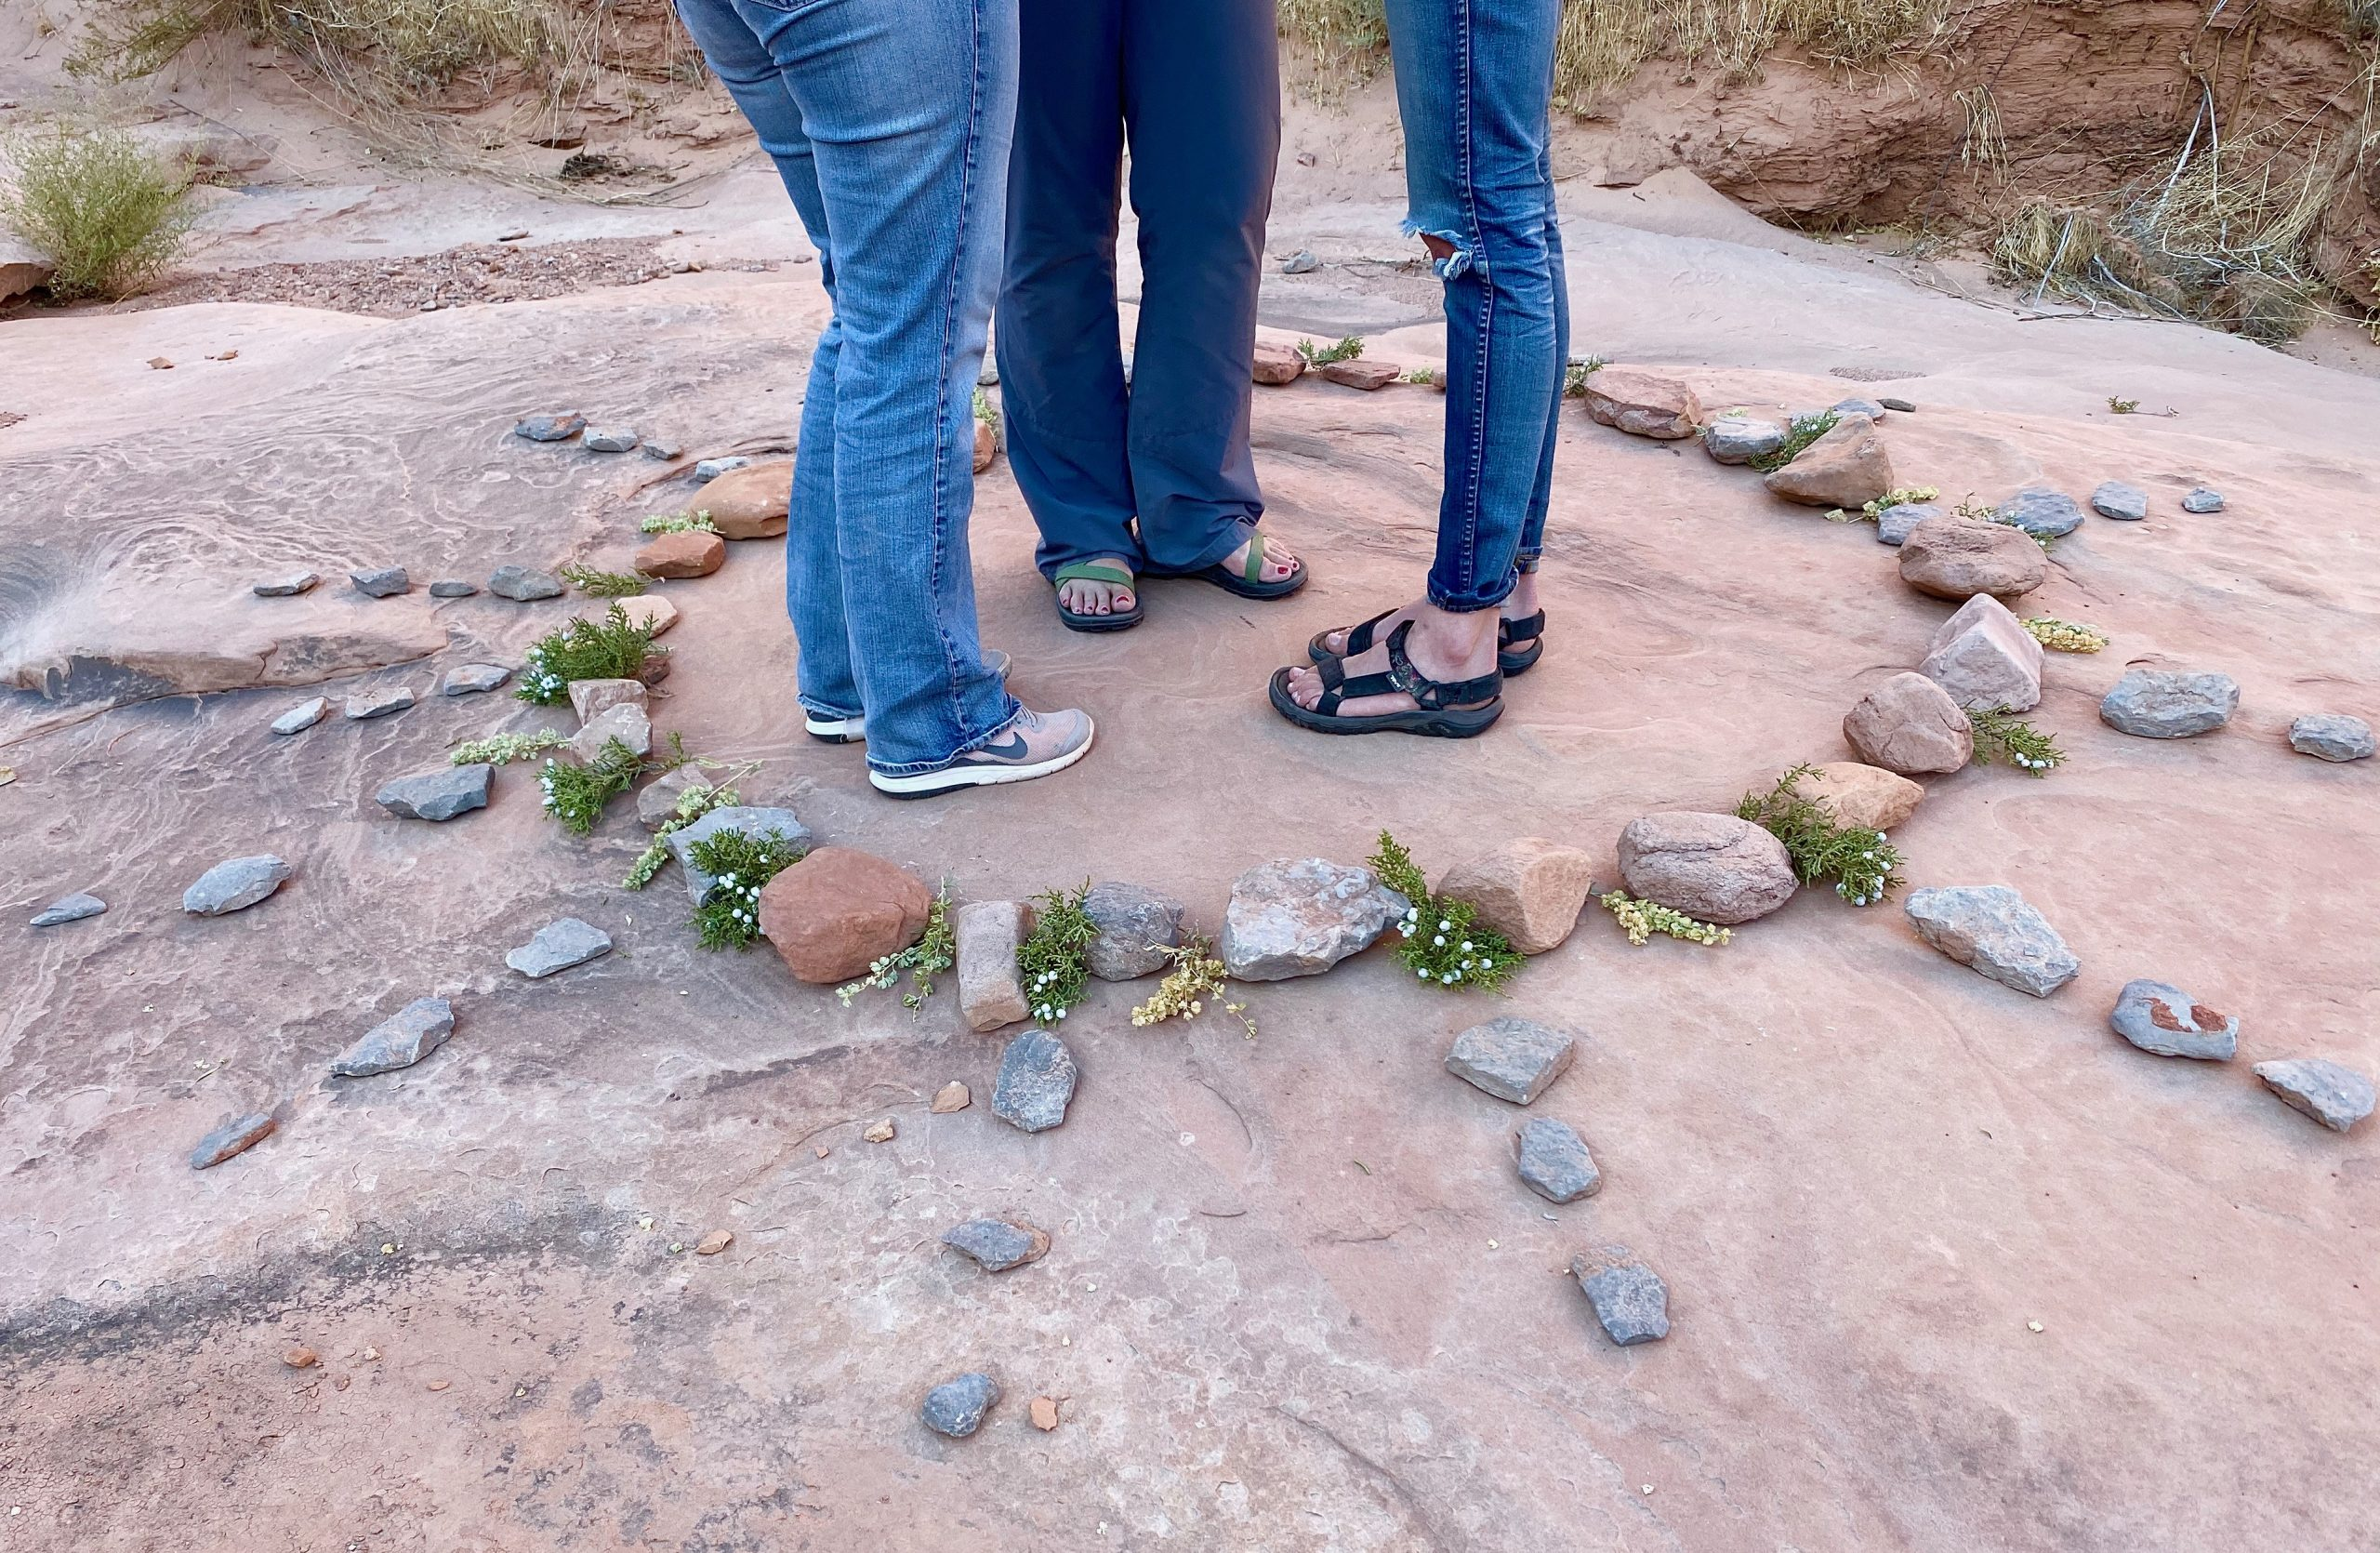 2010- First Student trip to Navajo Nation